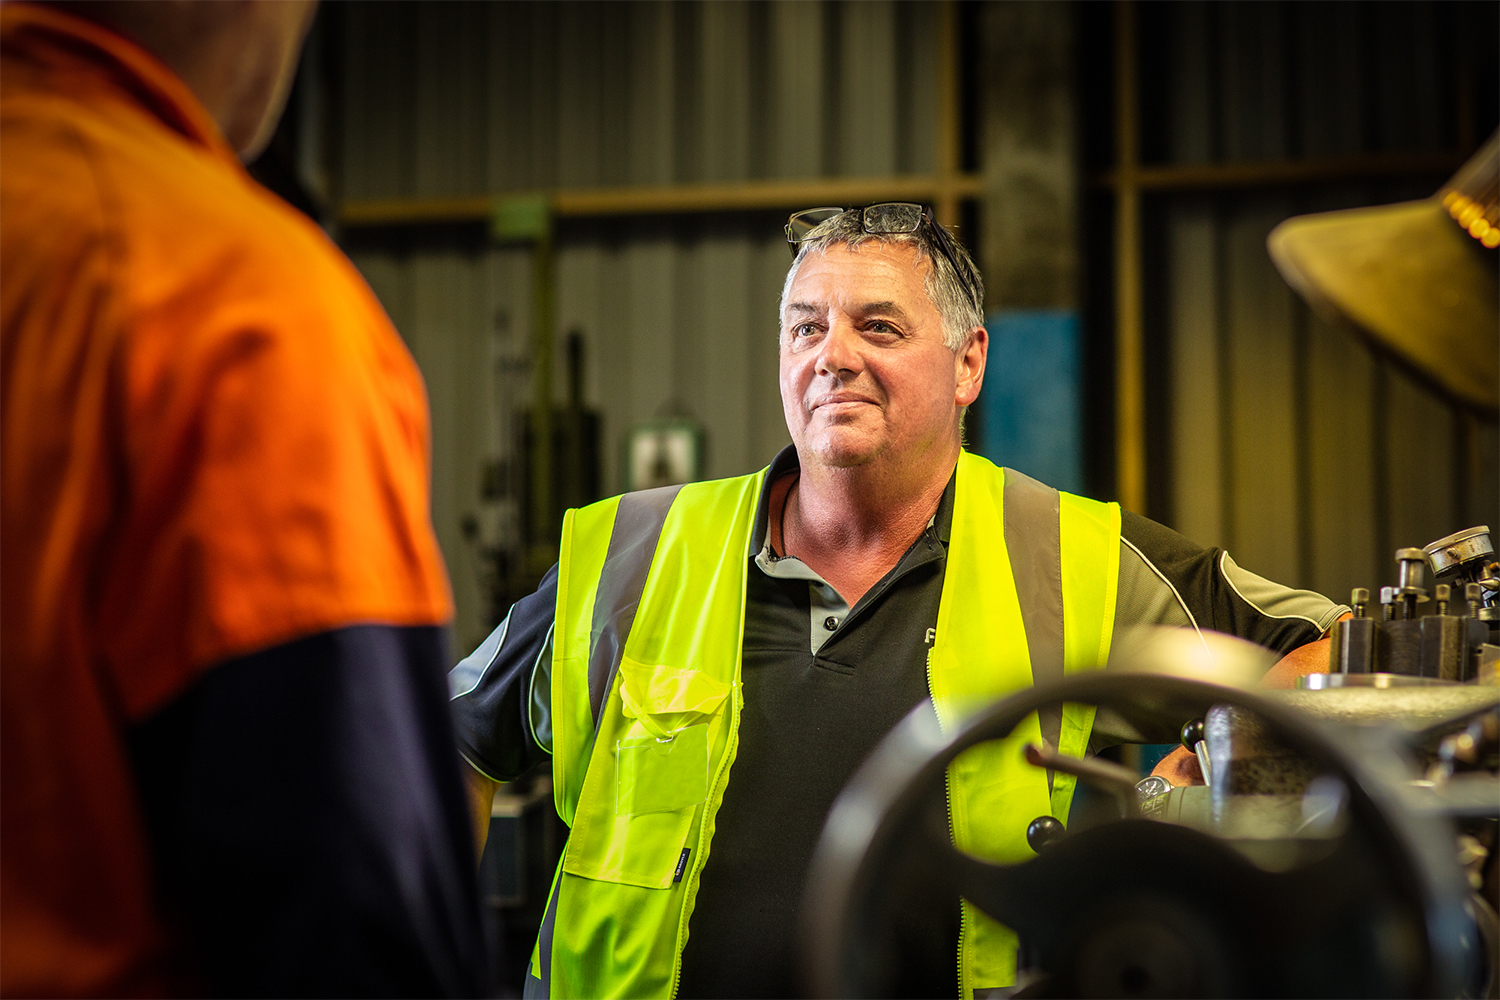 Ross harveyengineering services manager - Ross started in the engineering business by completing his apprenticeship with Anchor Dorman Limited as a Boilermaker/Welder. He gained extensive project management and boat build experience over the next 20 years with multiple engineering companies in New Zealand.He has been with Aimex from the start in 2009 and coordinates, prepares, estimates and creates comprehensive and detailed quotations for all the upcoming scheduled work and new vessel builds.At Aimex Service Group he works with customers to create cost effective solutions for major refits, new vessel builds and major vessel surveys.